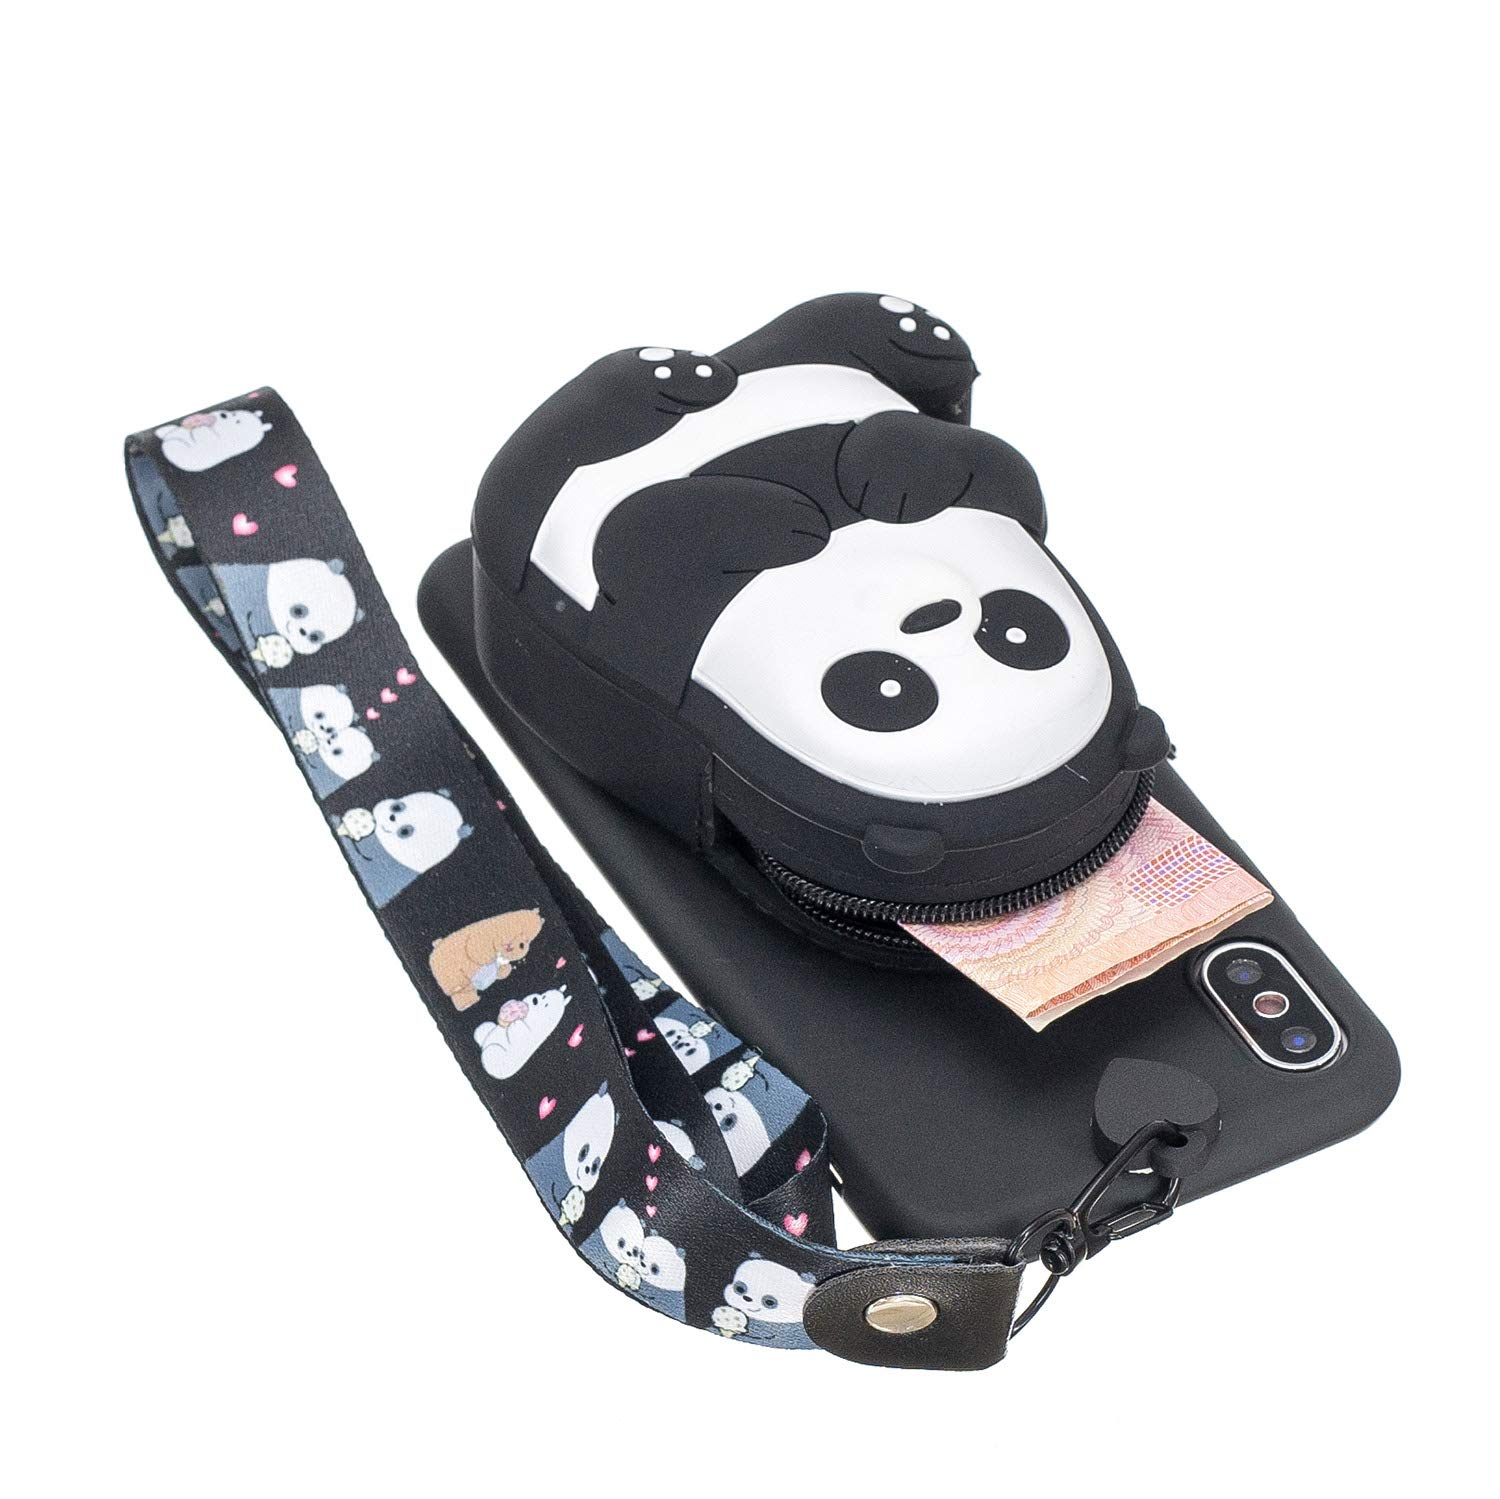 DAMONDY iPhone Xs Cover Case,iPhone X Case,3D Cartoon Cute Pocket Purse Zipper Wallet Stand Holder Cover Soft Silicone Protective Case with Lanyard Strap for iPhone Xs-Black Panda